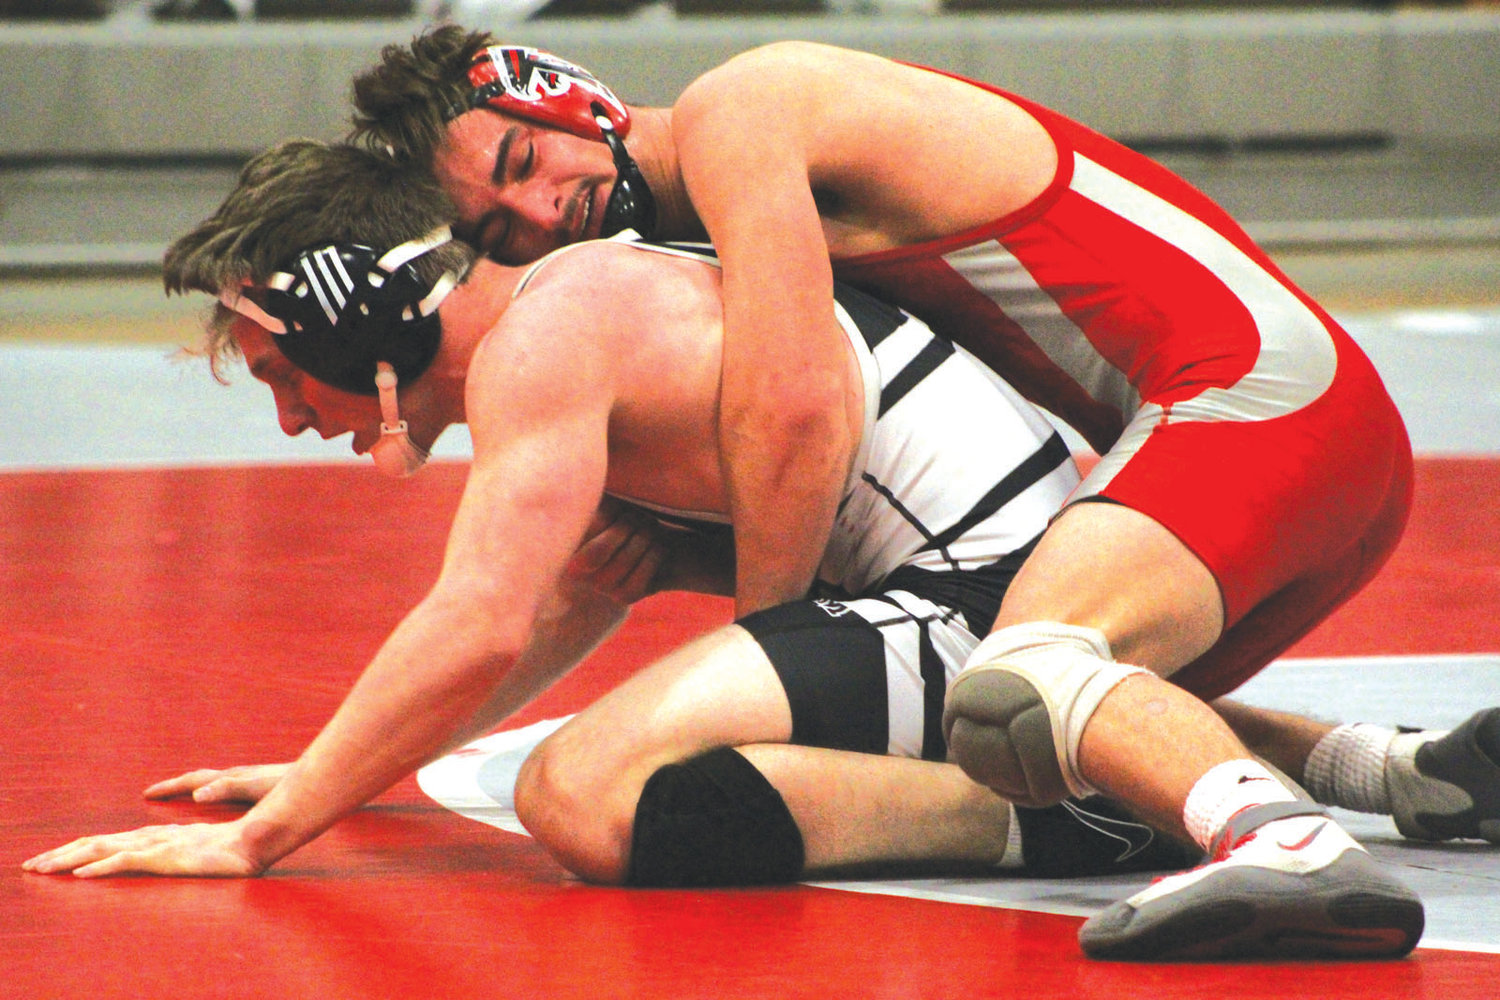 TAKING THE BACK: Cranston West's Nelson Cooper takes the back of a Pilgrim grappler.